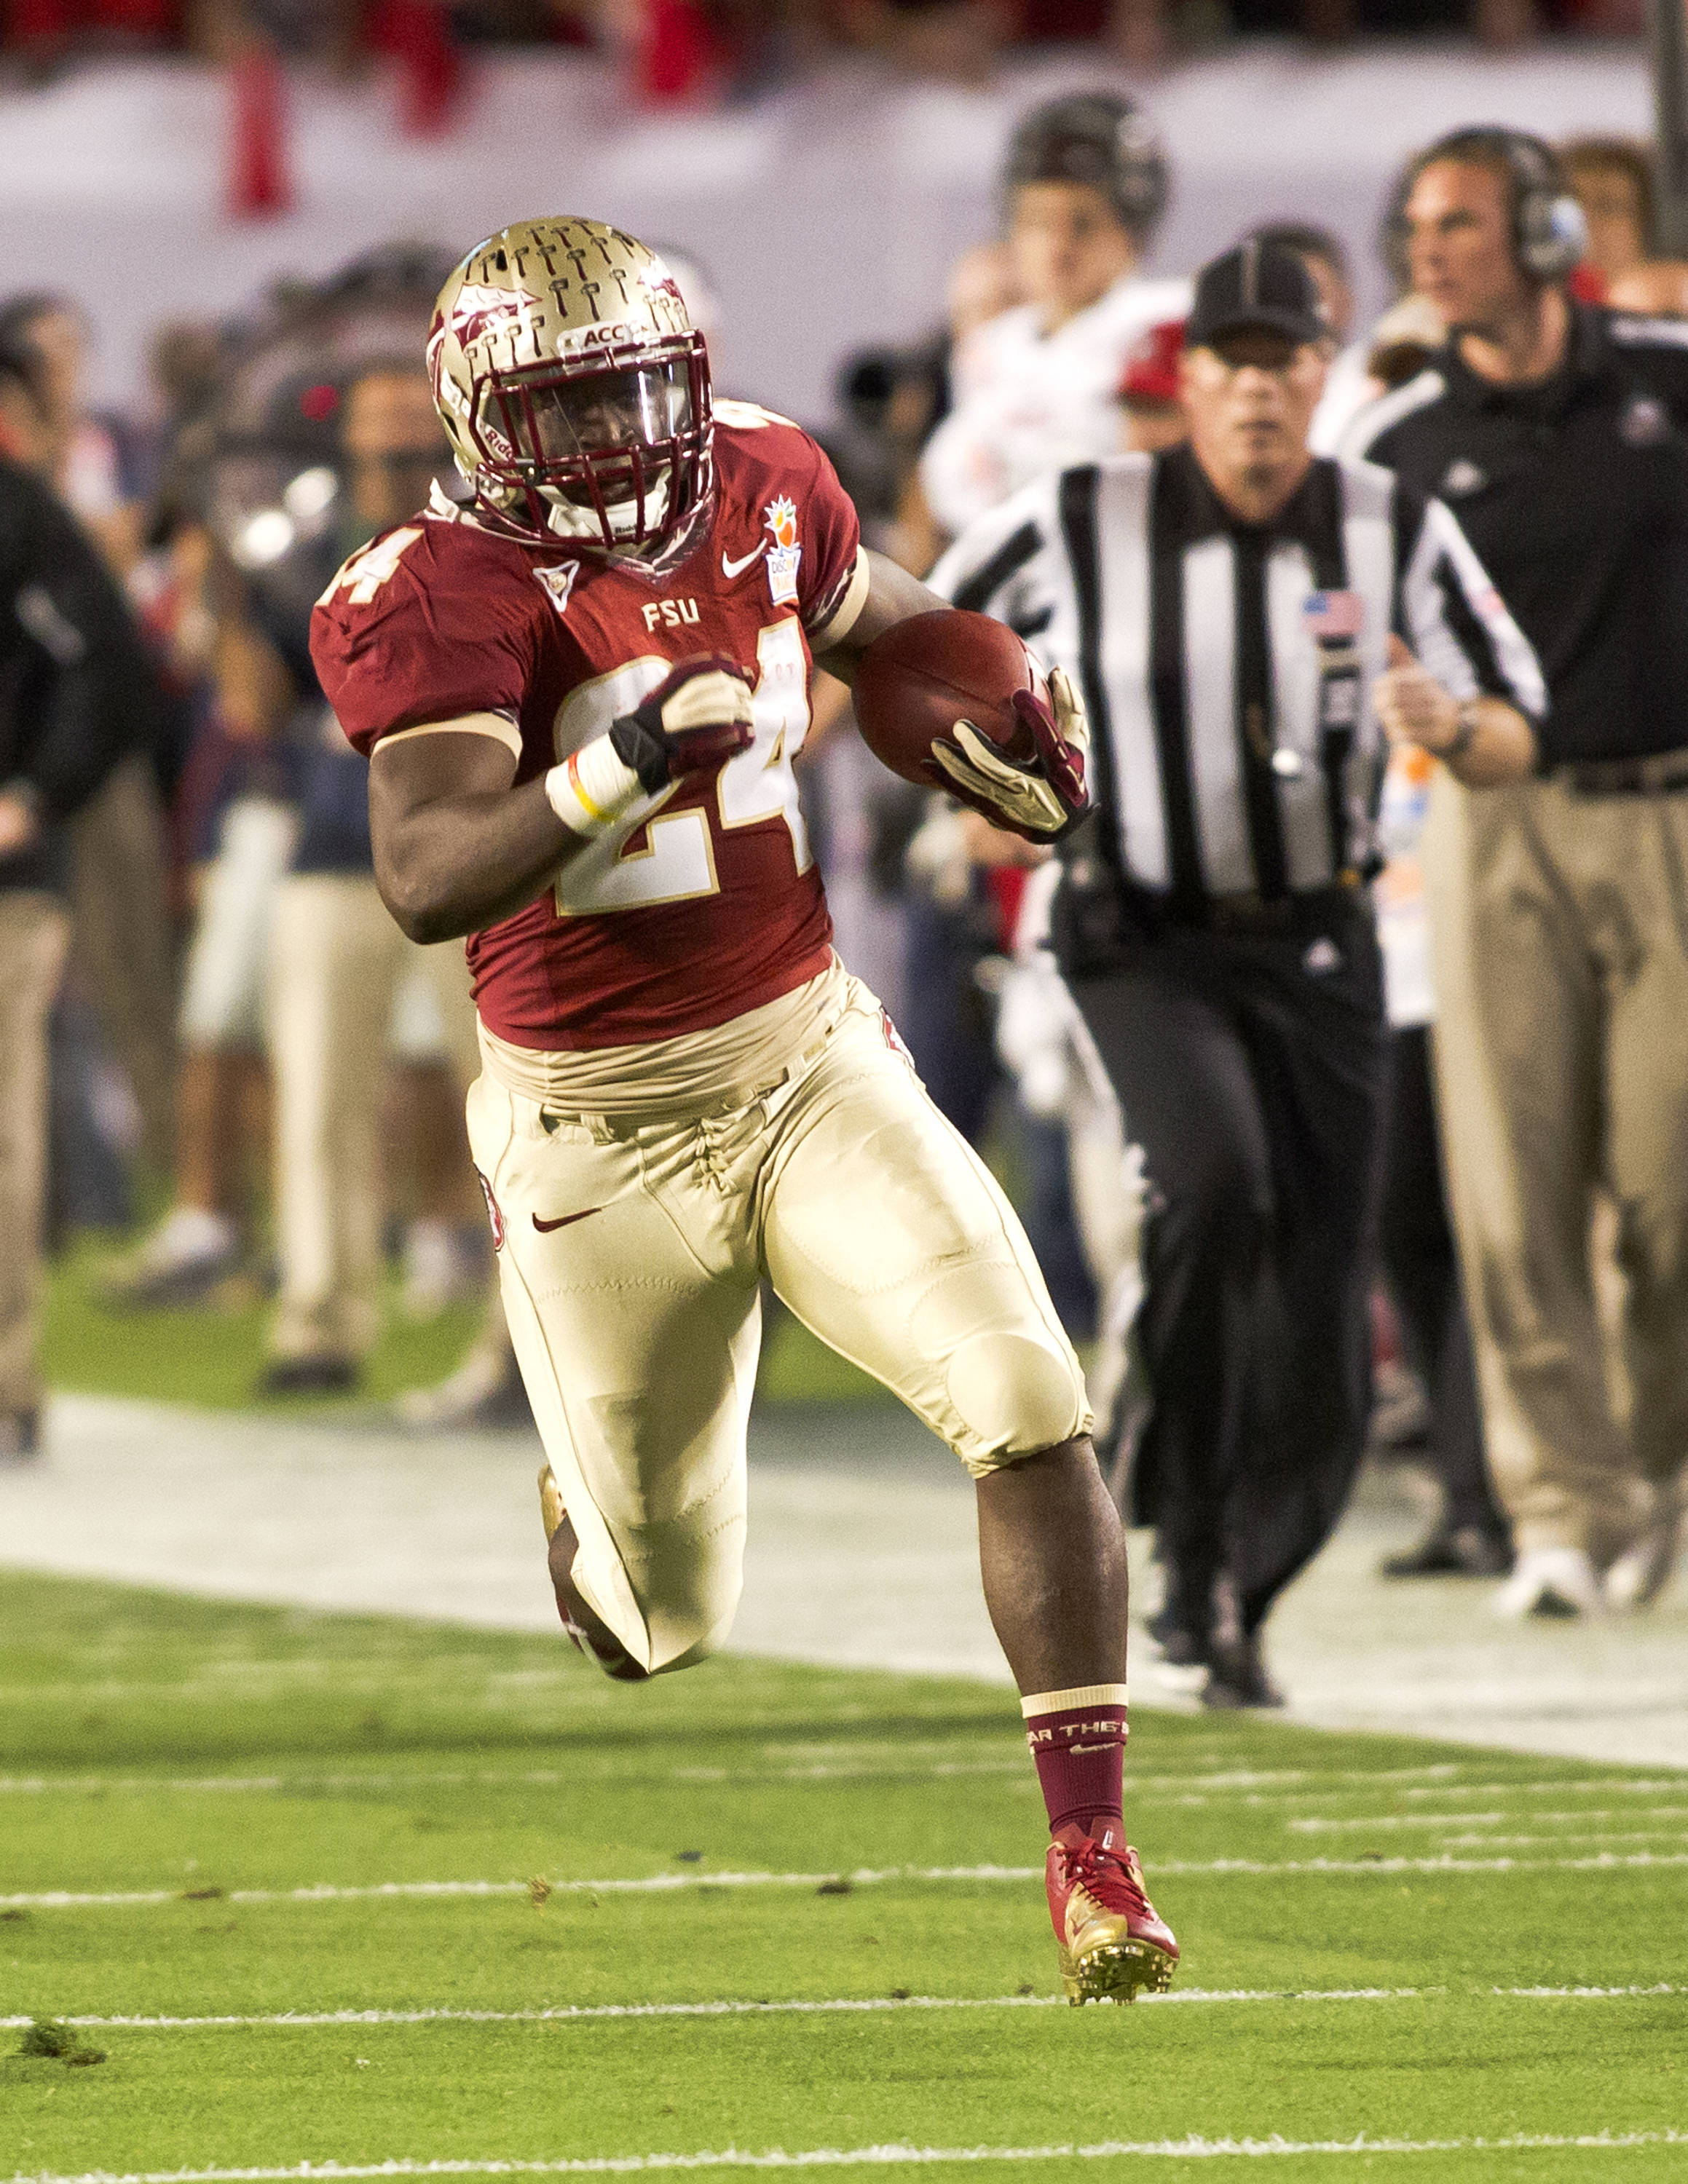 Lonnie Pryor (24) on a 60 yard touchdown run, FSU vs No. Illinois, 01/01/13. (Photo by Steve Musco)